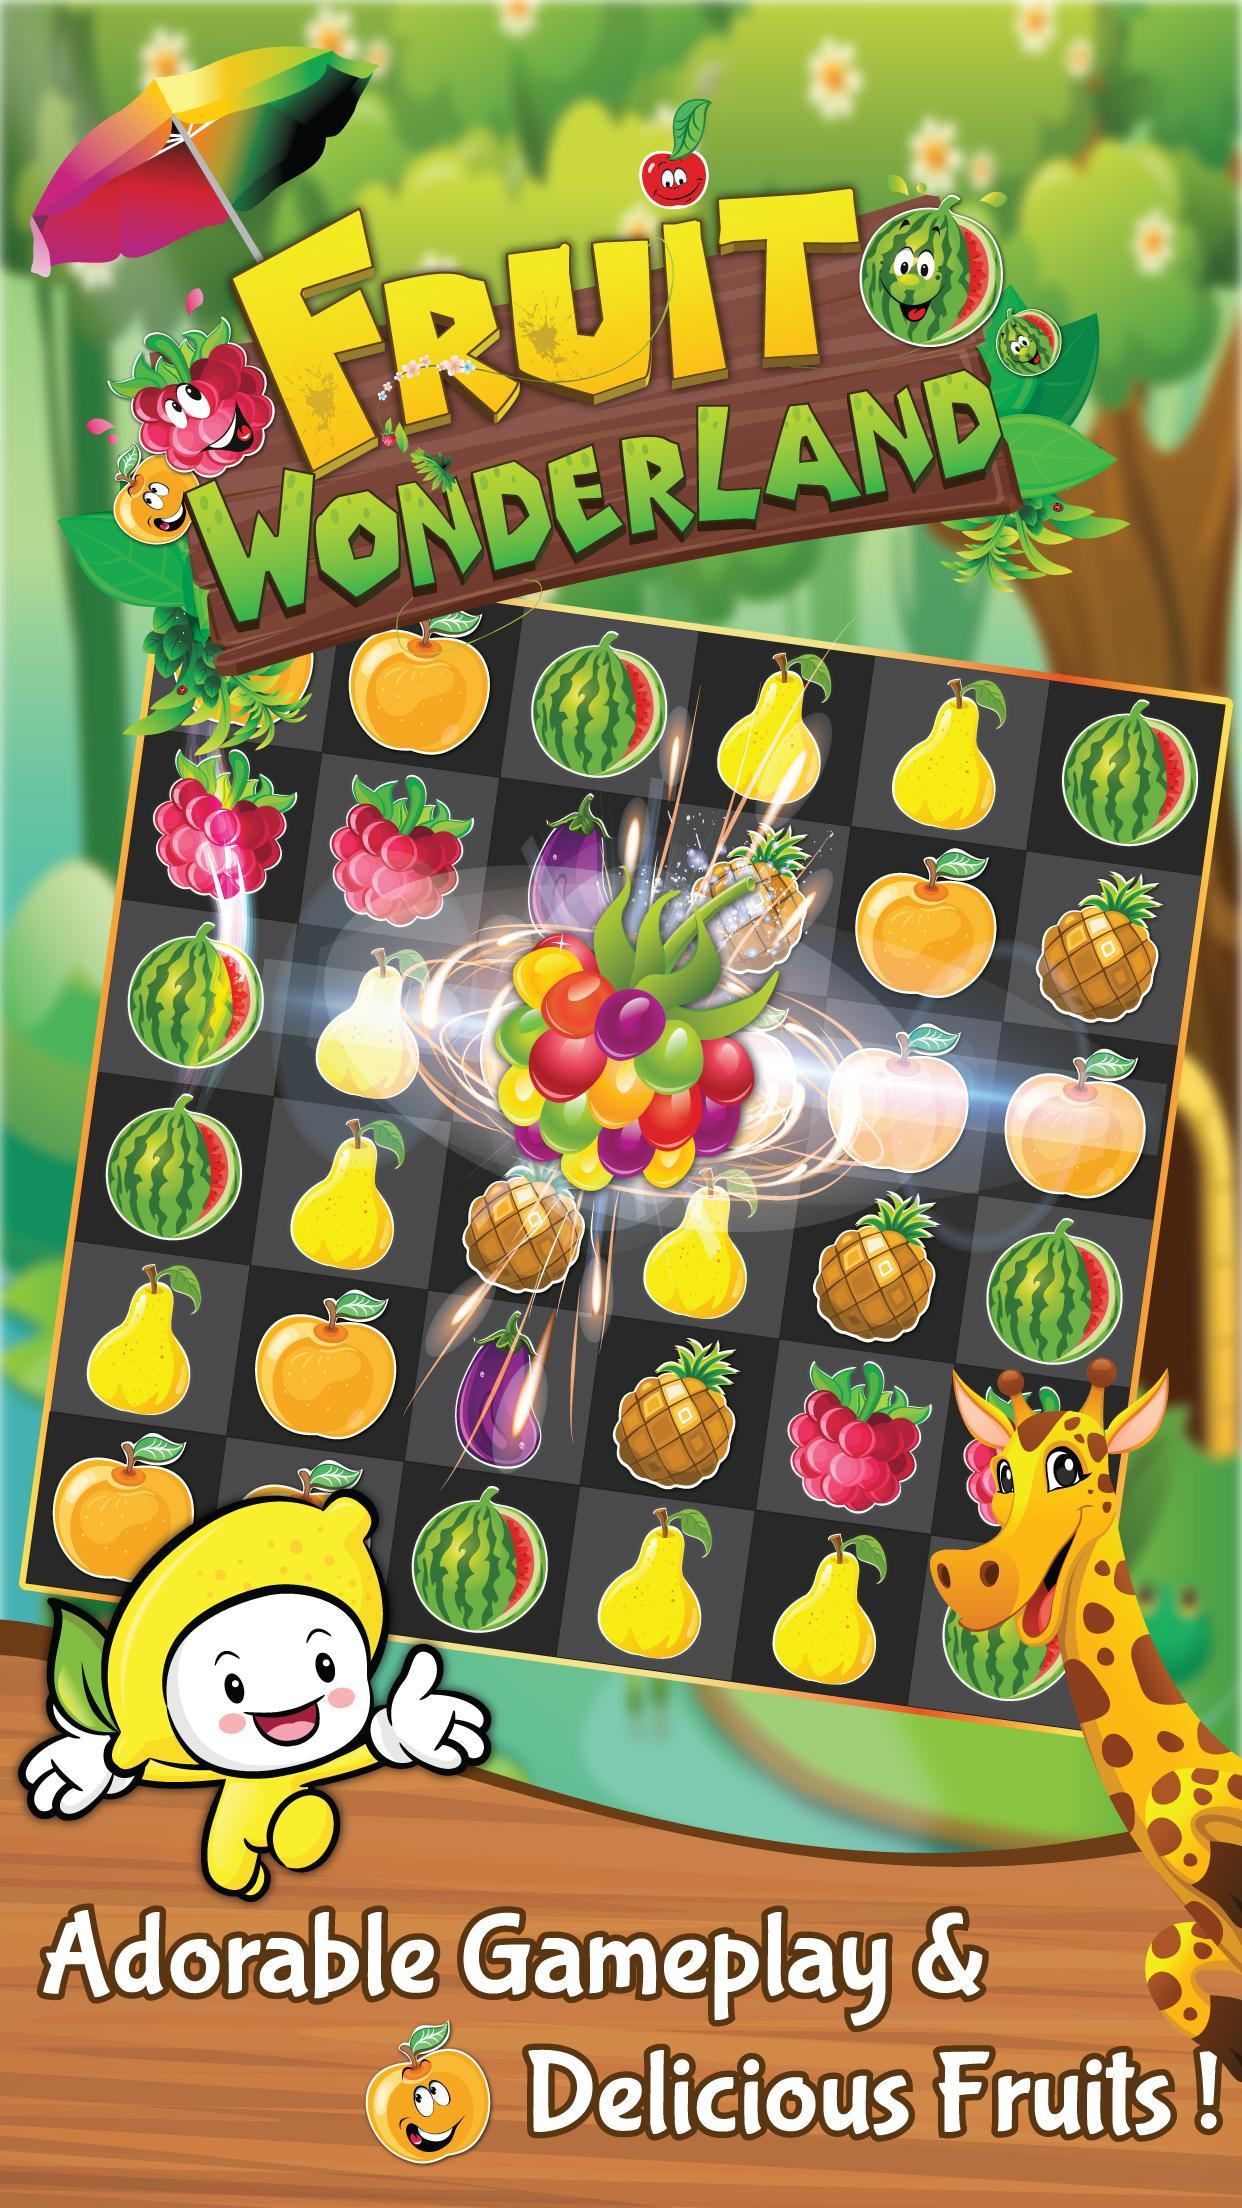 Match 3 Fruit Wonderland Puzzle - Jungle Adventure 1.101 Screenshot 1